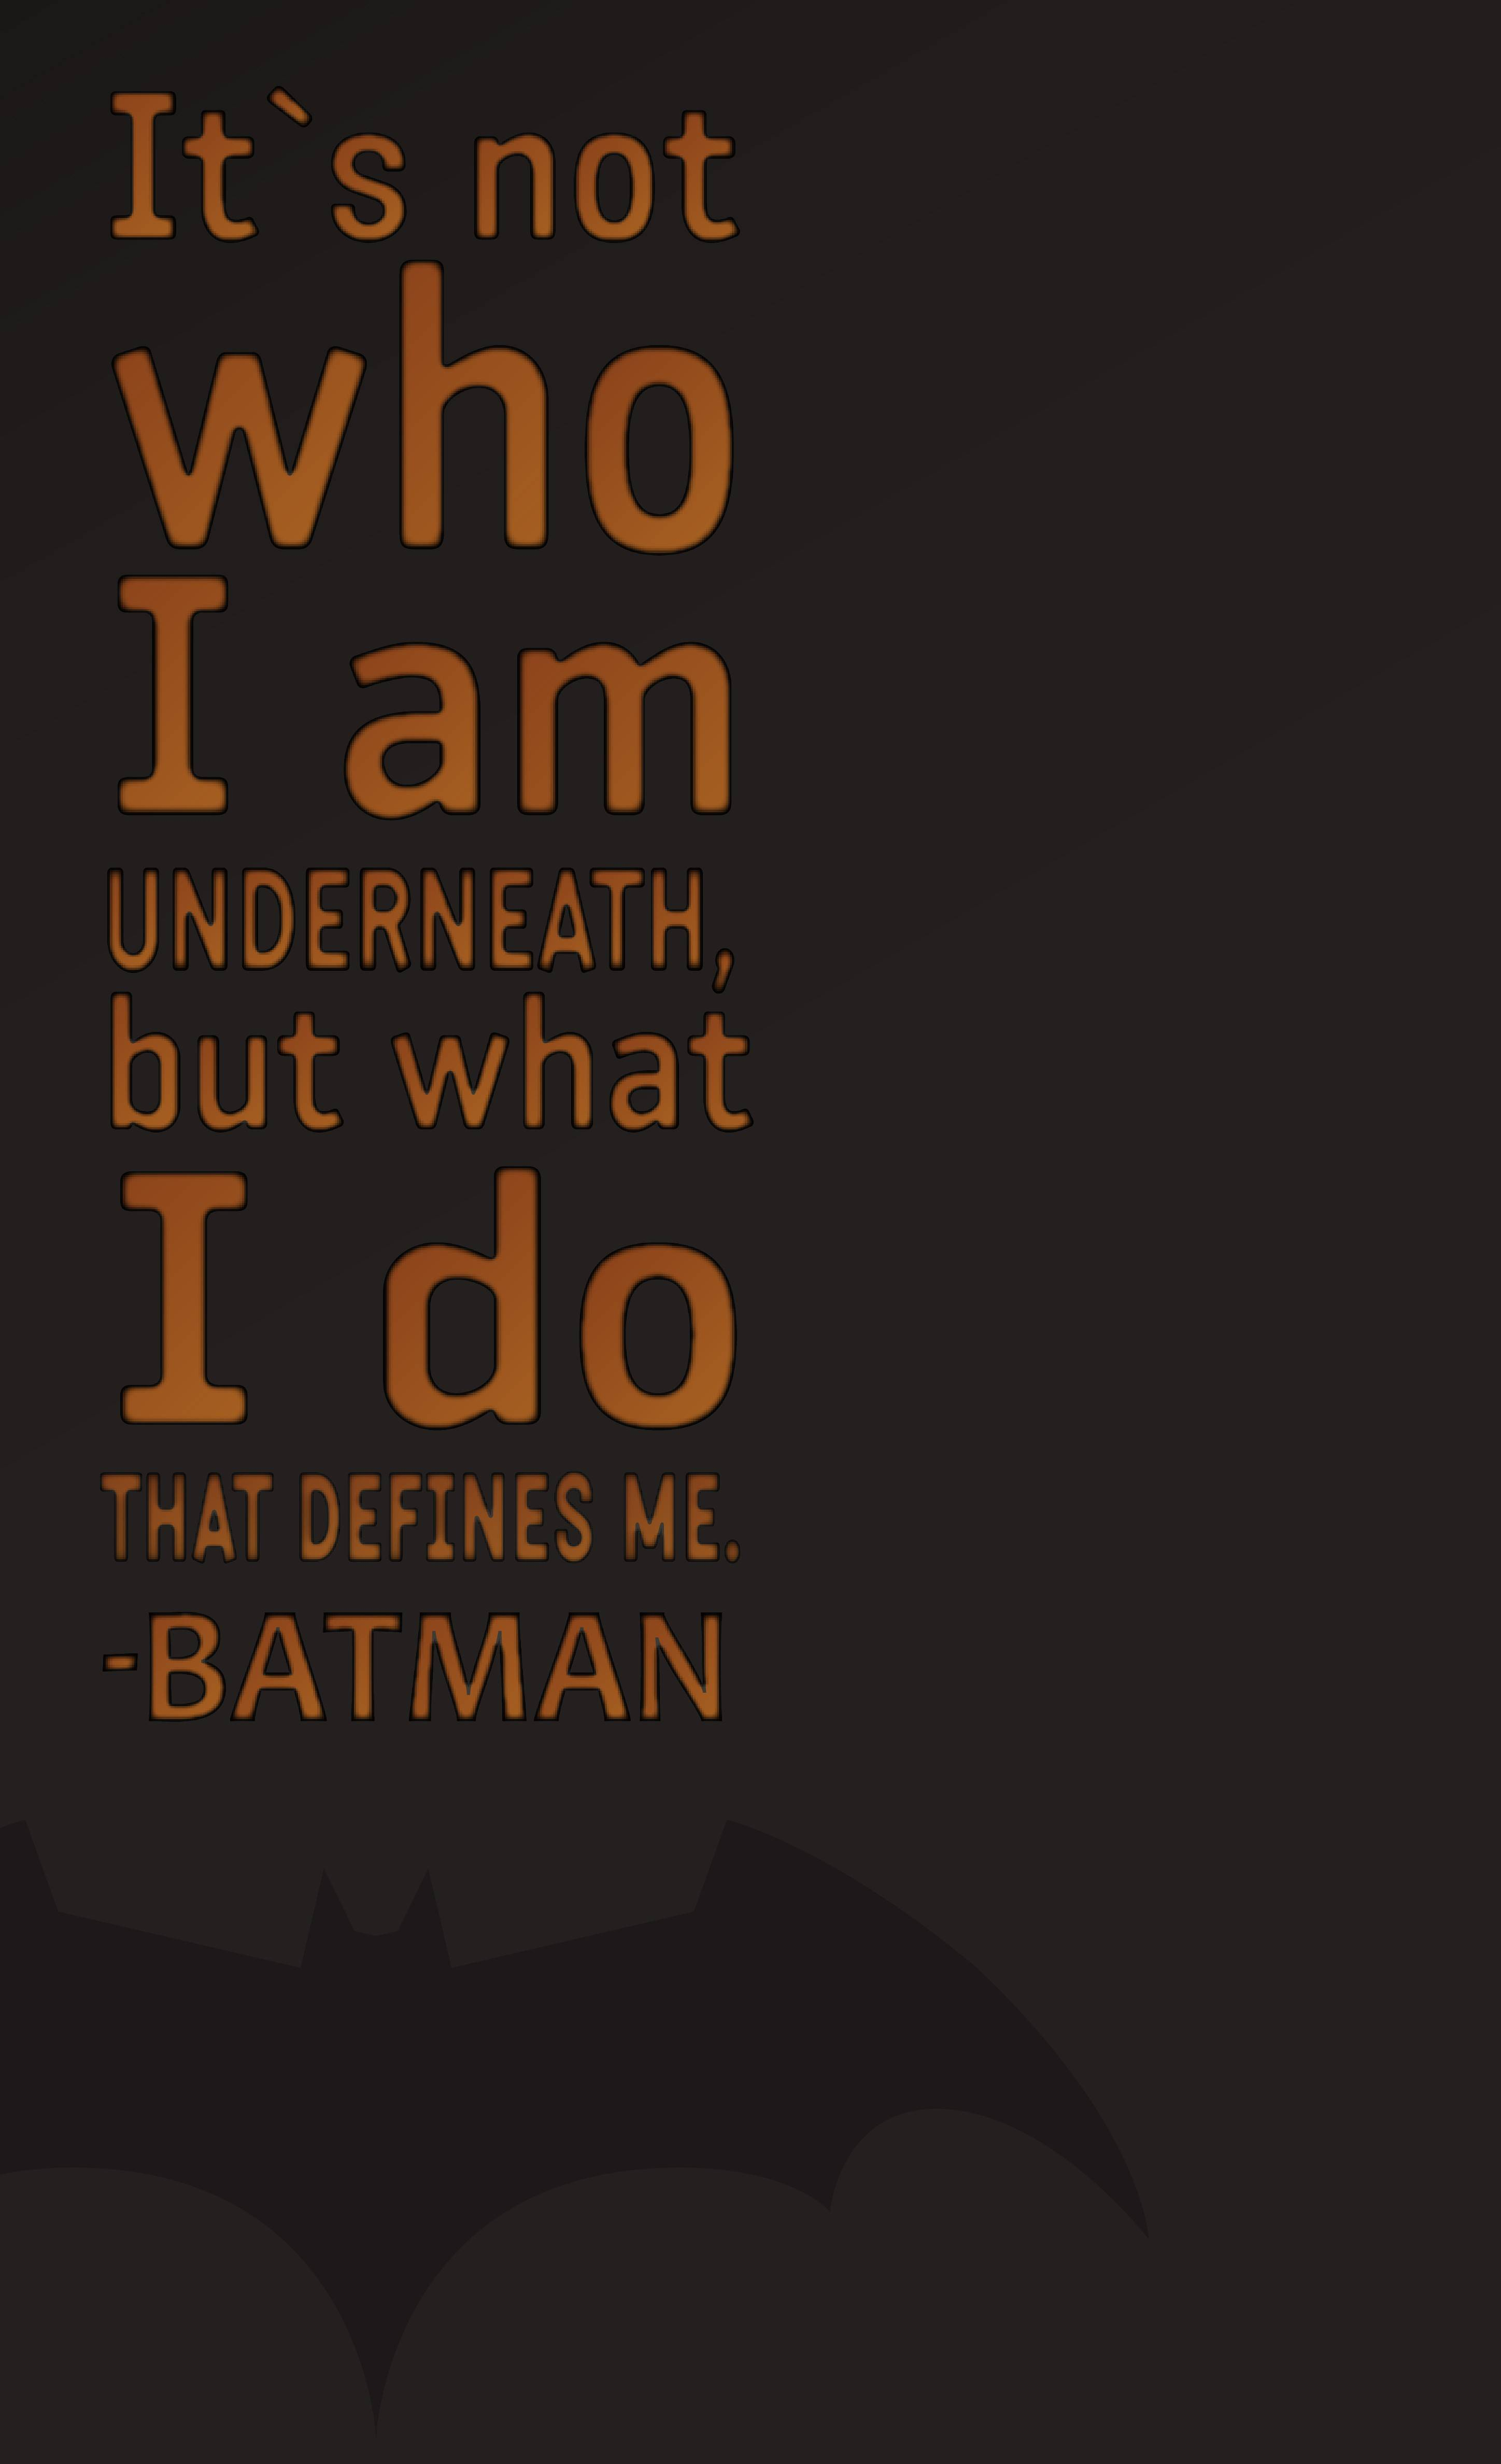 Download Batman Quotes Wallpaper Gallery